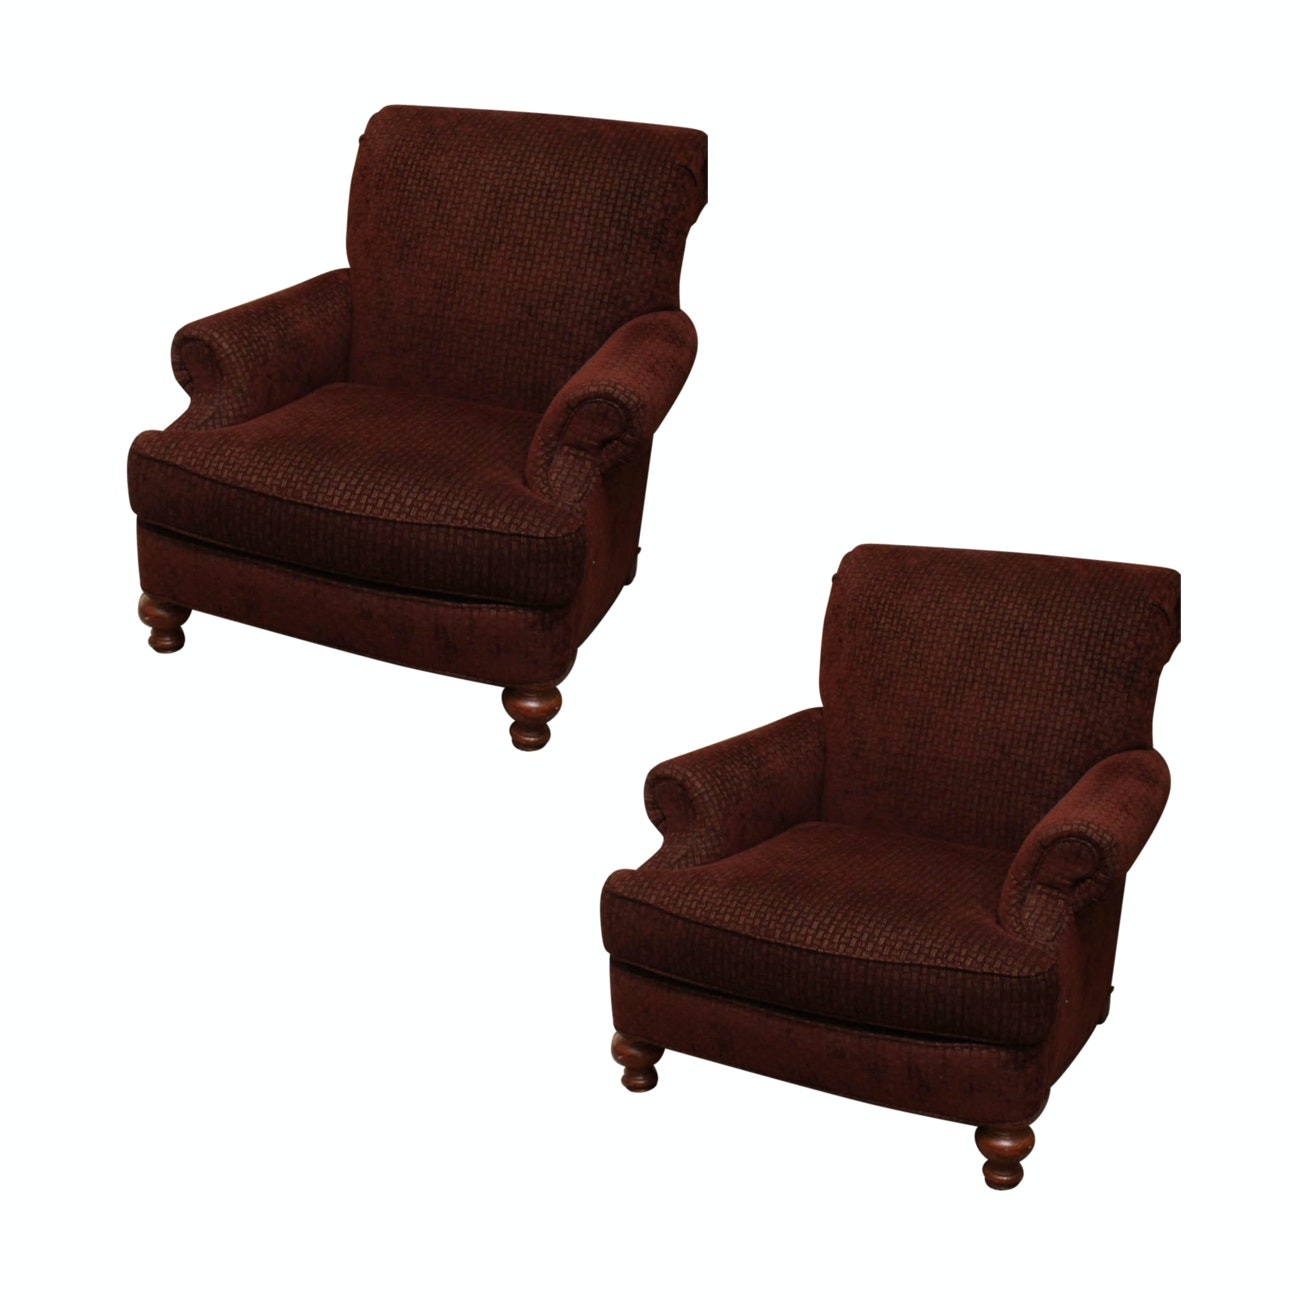 Pair of Clayton Marcus Handcrafted Upholstered Armchairs